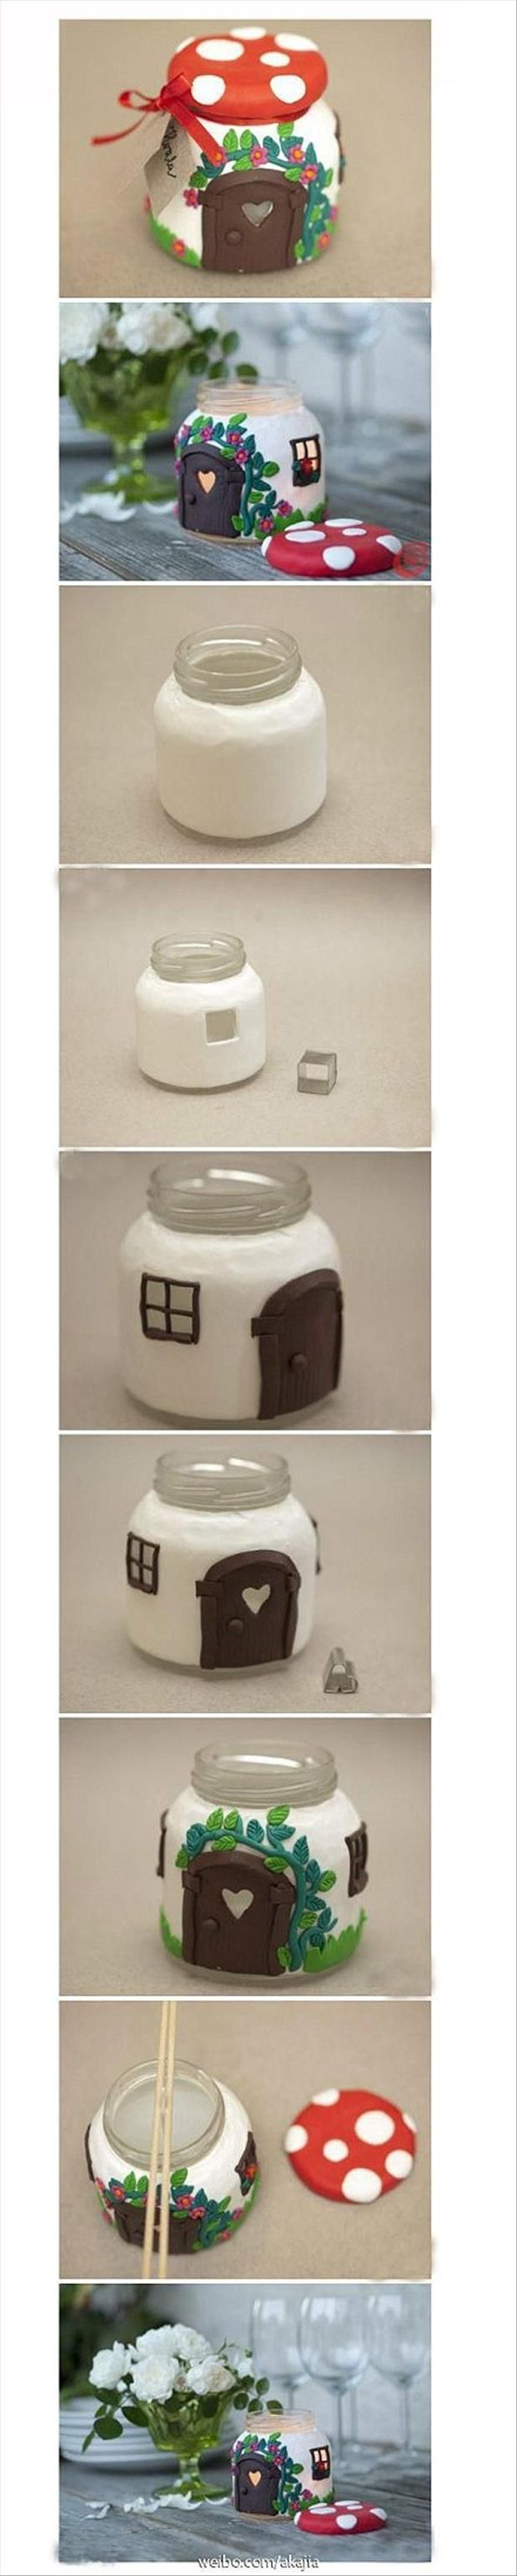 Toadstool house jar candle - I finally found the source! (it's in Italian)